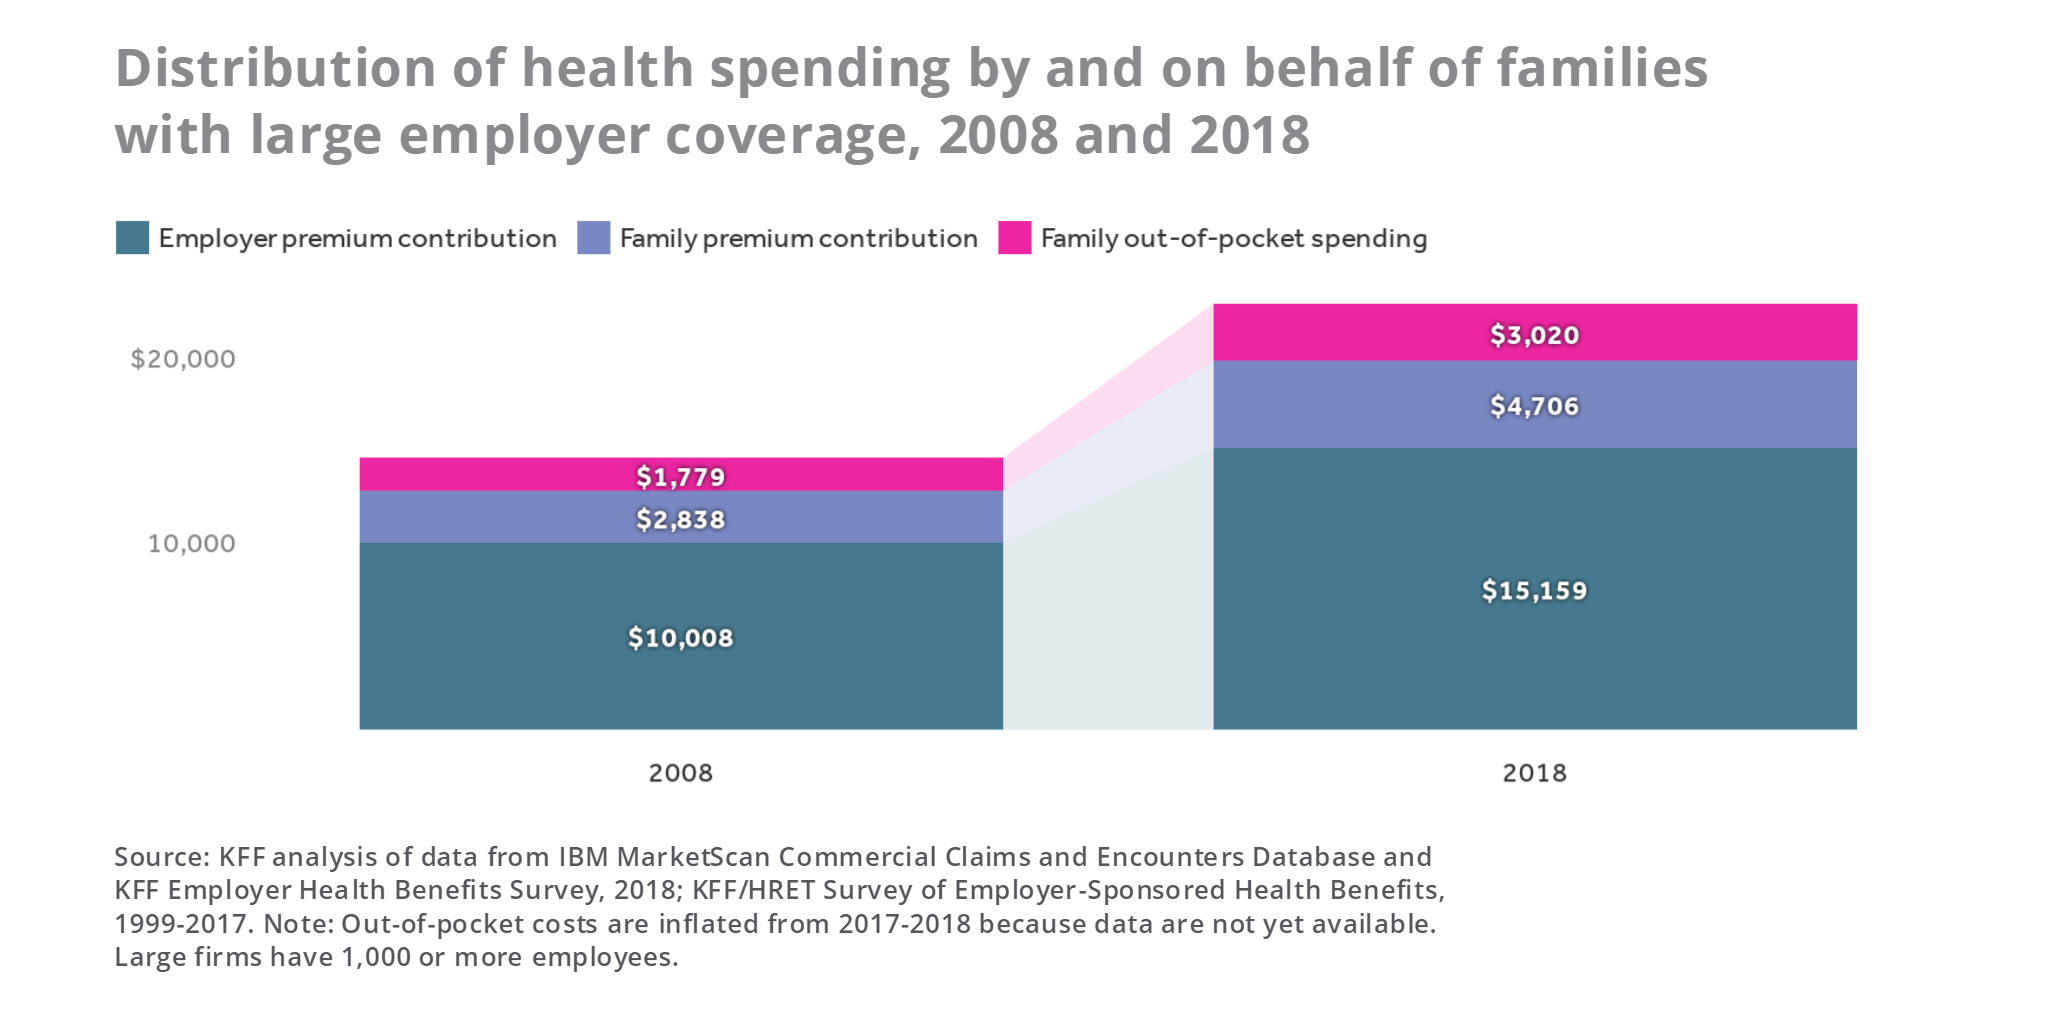 Tracking The Rise In Premium Contributions And Cost Sharing For Families With Large Employer Coverage Peterson Kff Health System Tracker